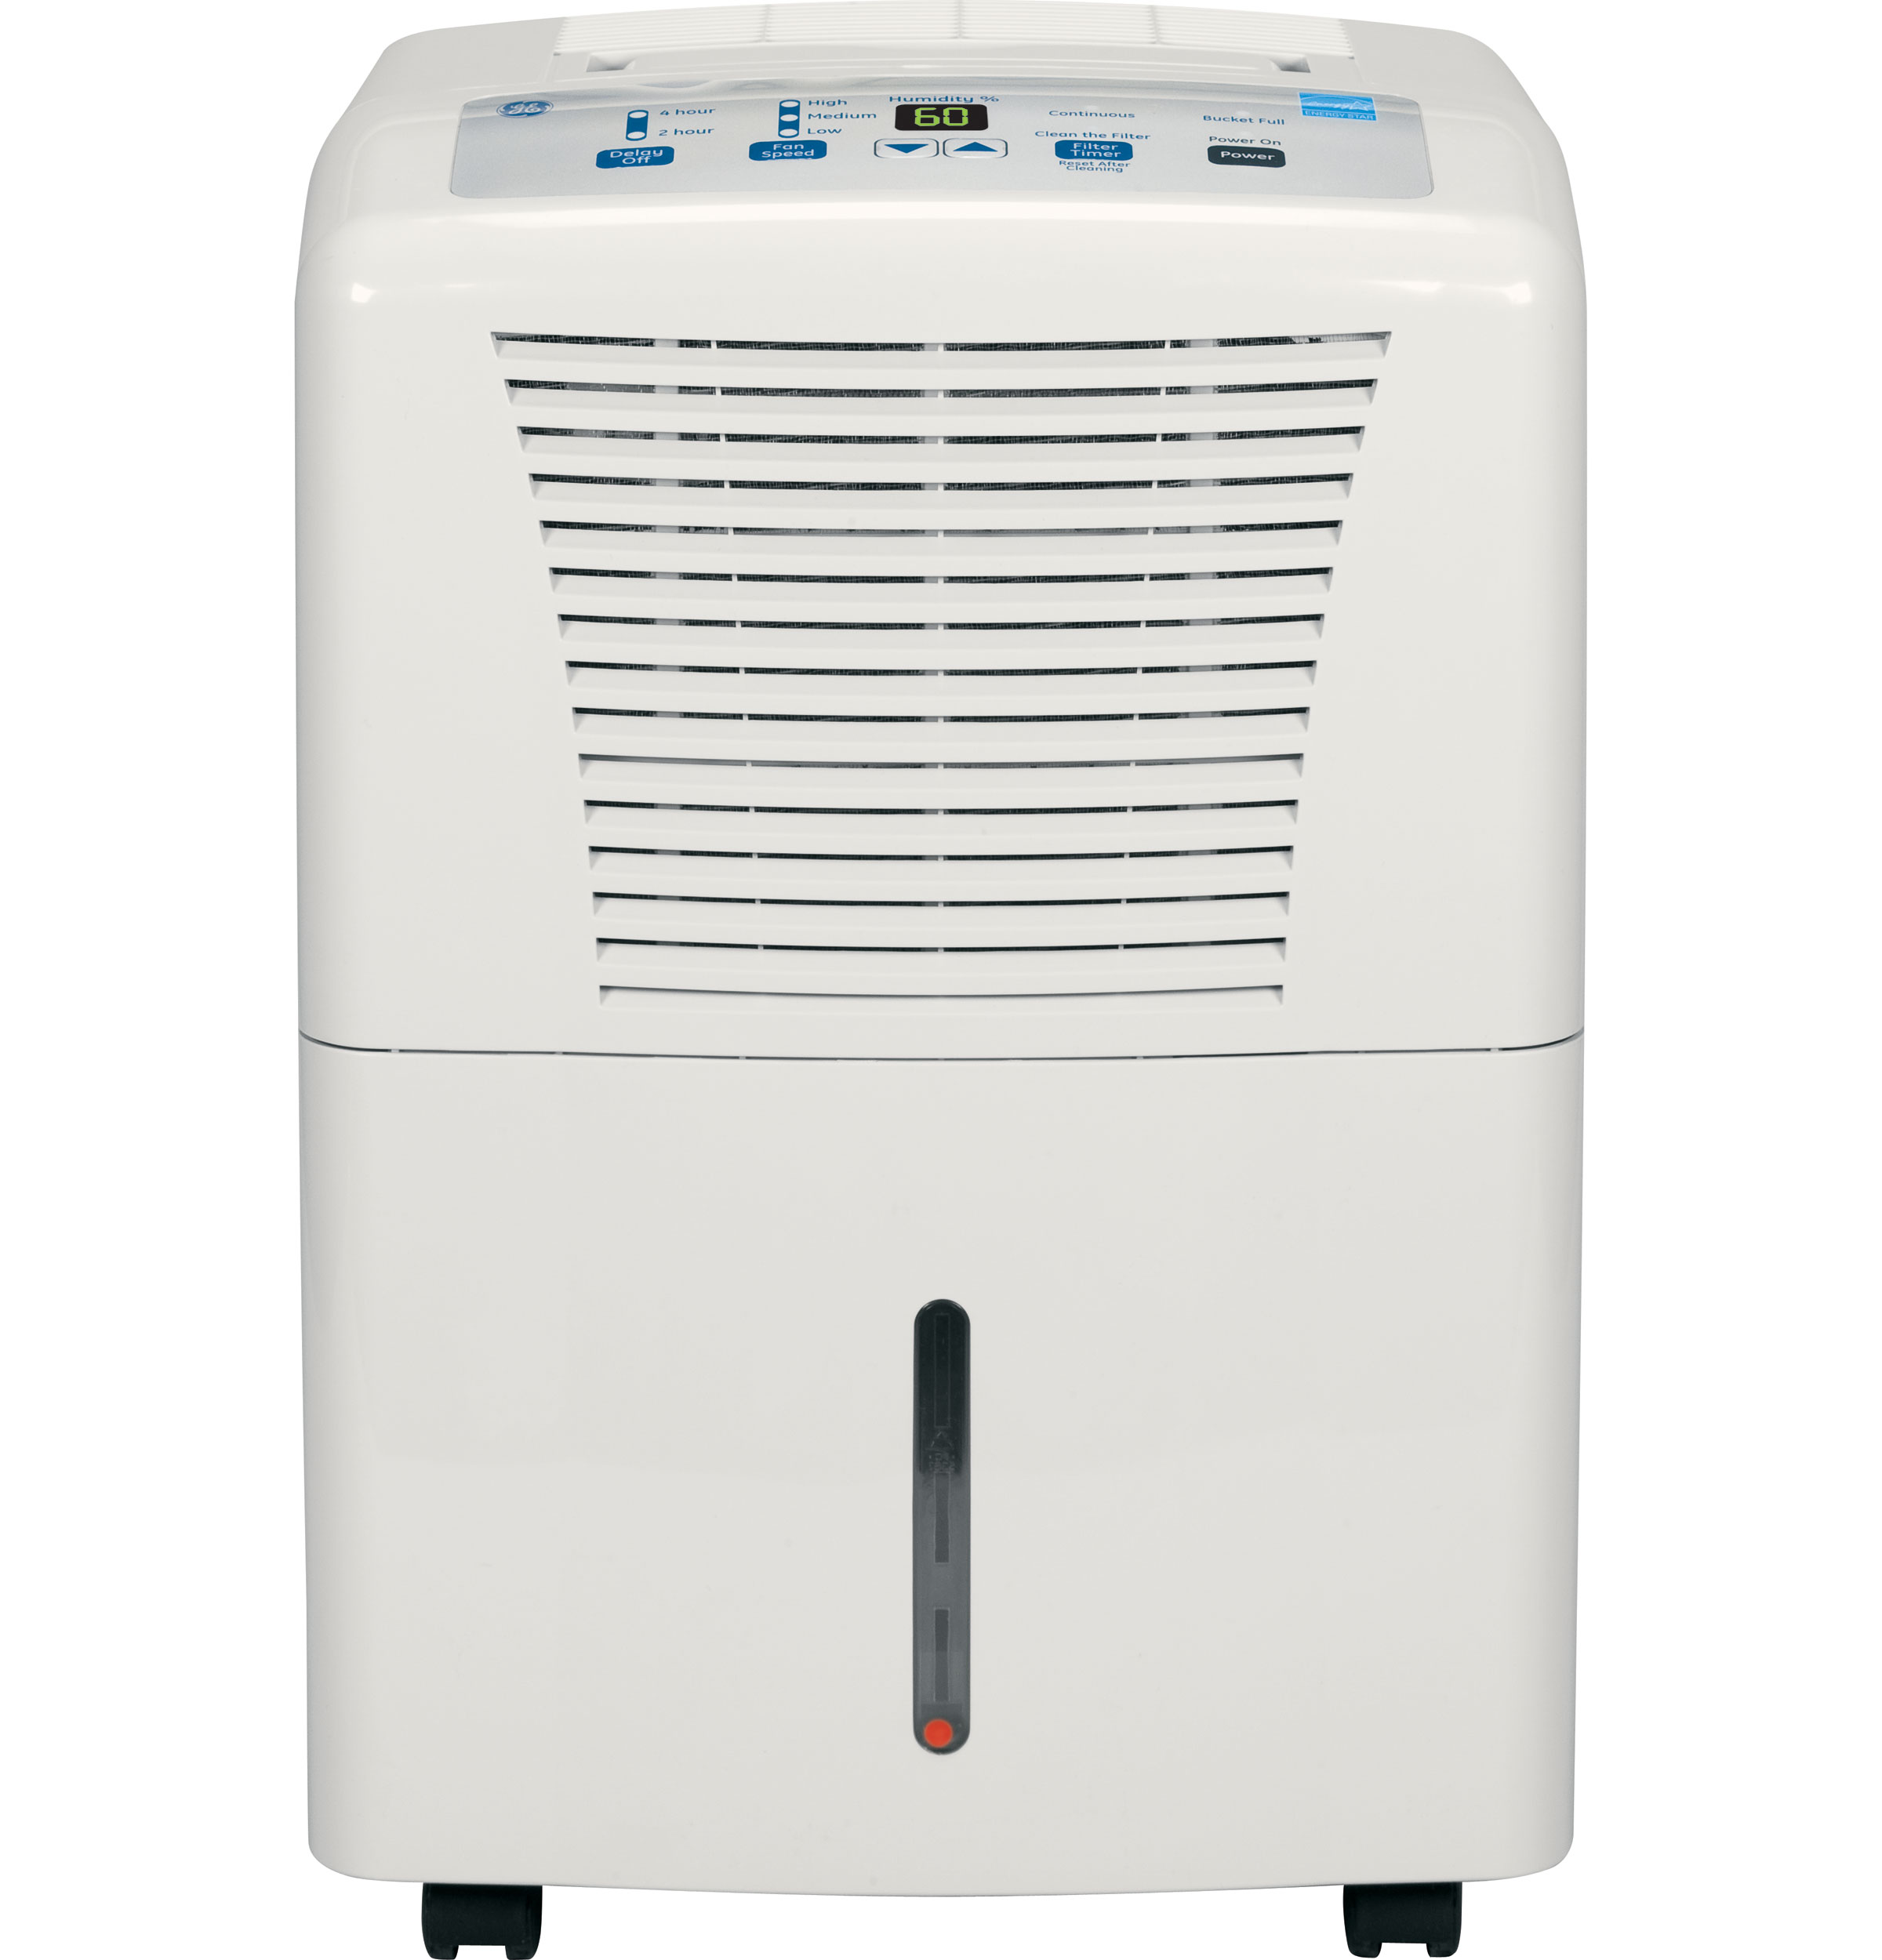 GE® Dehumidifier AHR30LM GE Appliances #2476A7